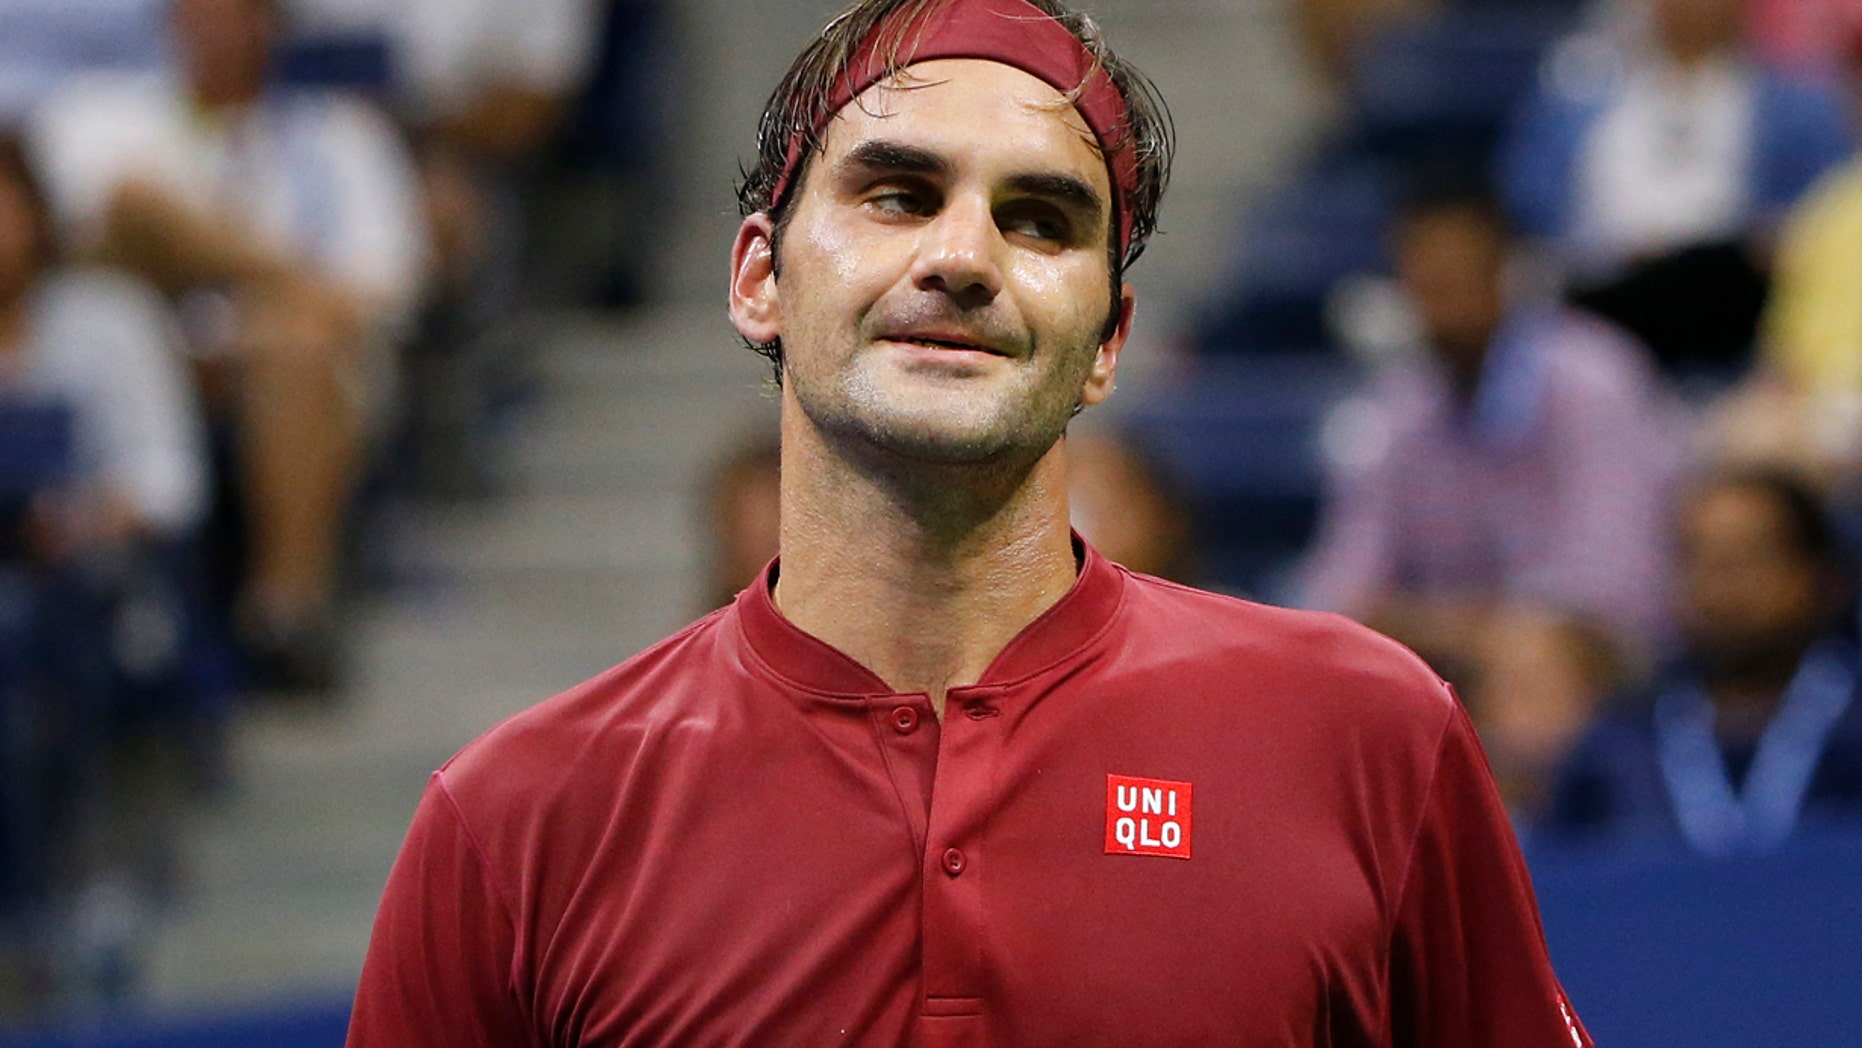 SEPT. 3: Roger Federer, of Switzerland, reacts after losing a point to John Millman, of Australia, during the fourth round of the U.S. Open tennis tournament.